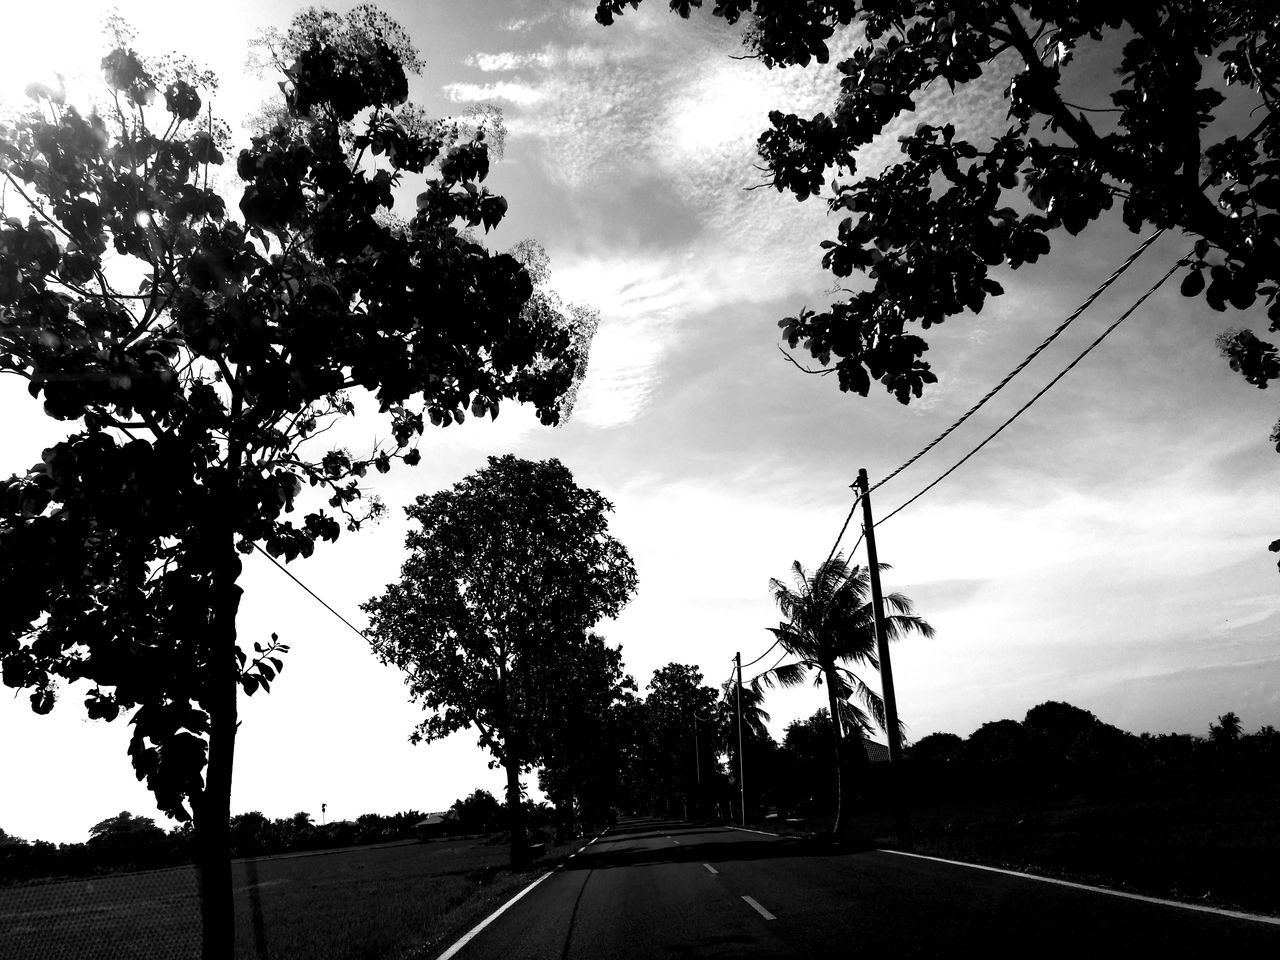 tree, road, sky, cloud - sky, transportation, the way forward, car, day, outdoors, no people, land vehicle, scenics, nature, beauty in nature